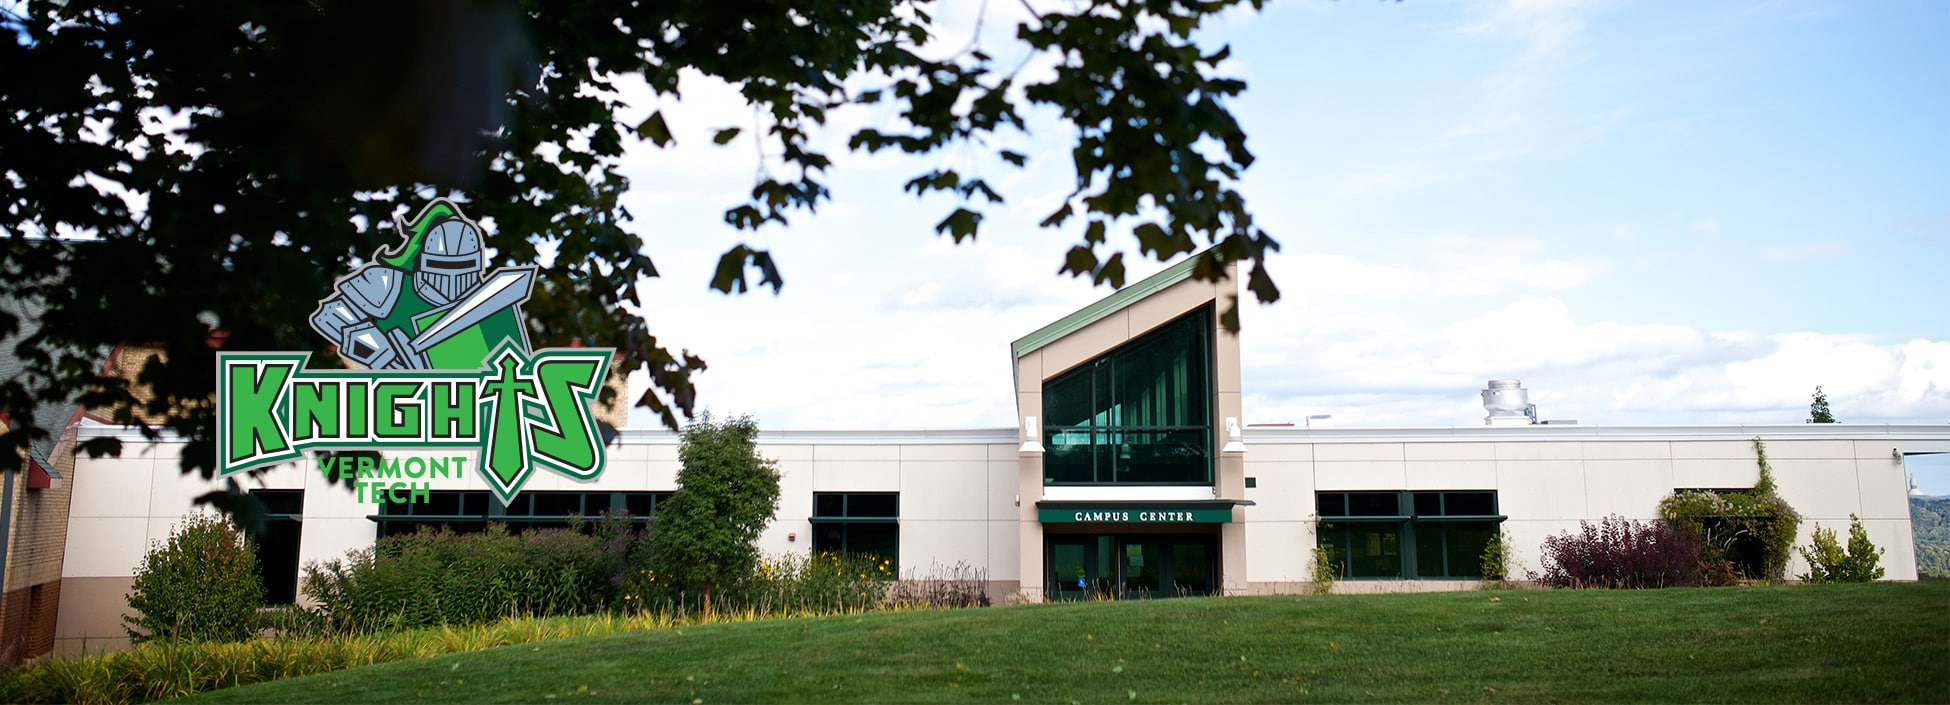 SHAPE Center, Vermont Tech athletics, green knight